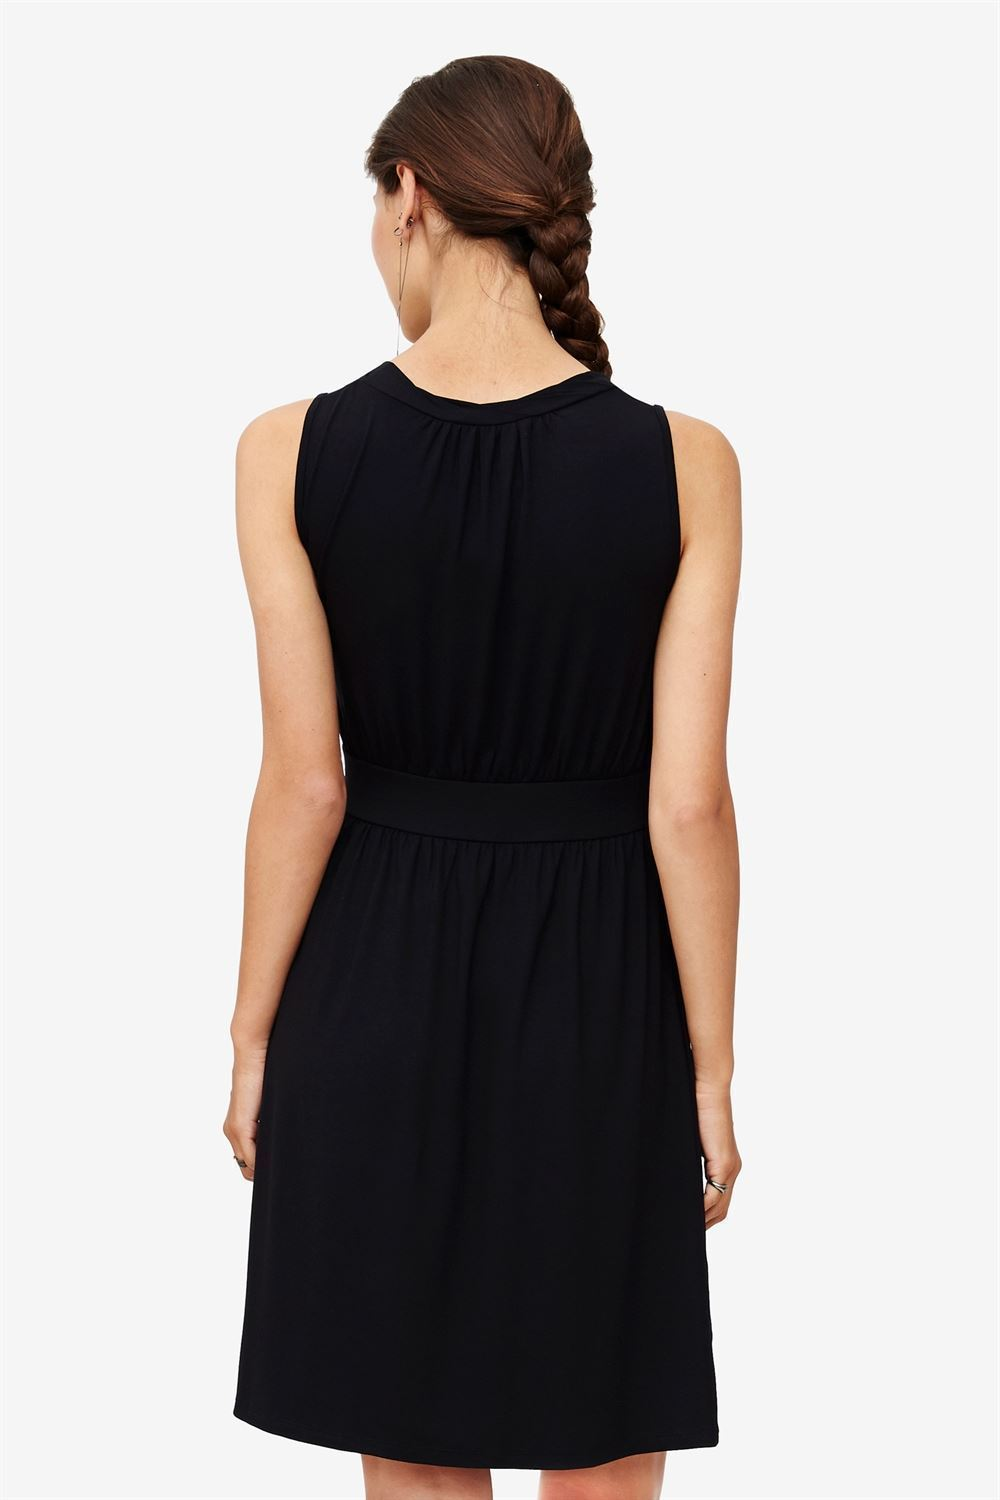 Black sleeveless nursing dress – knee-length in bamboo fibers - seen from behind